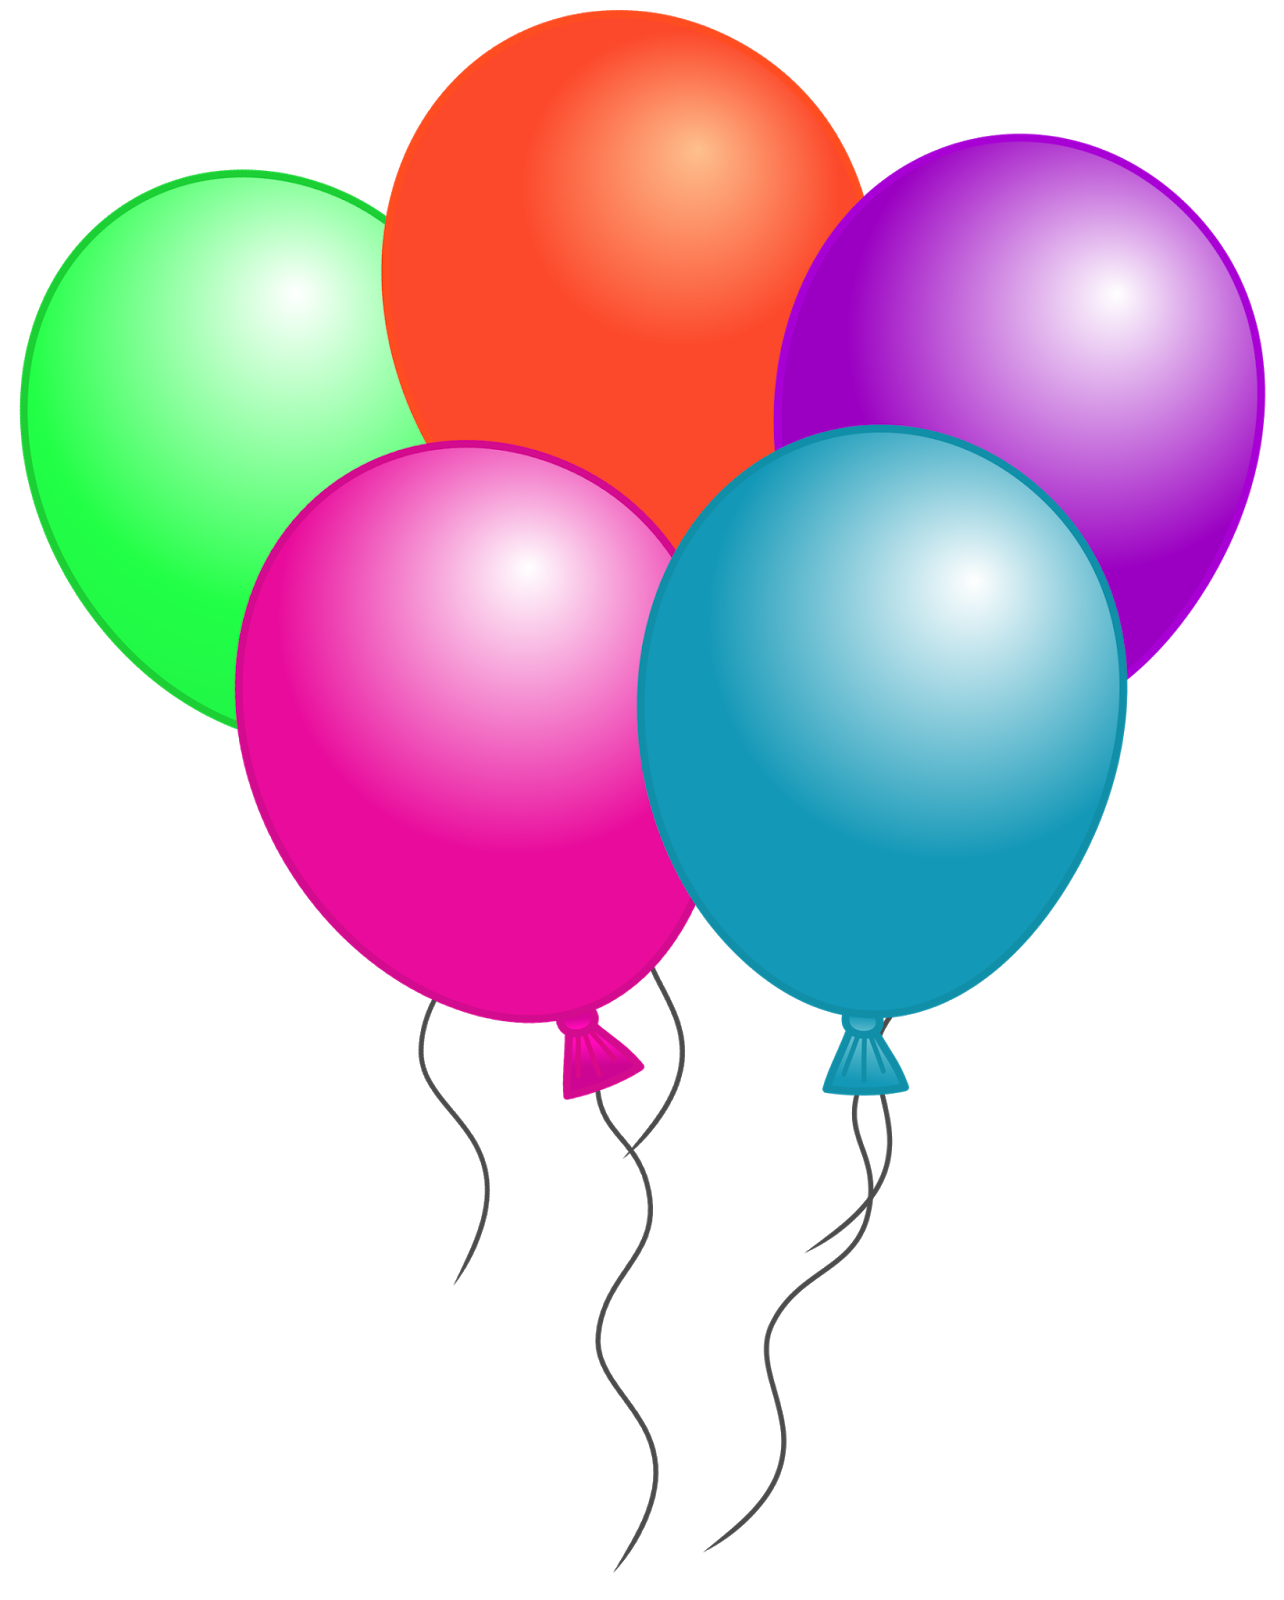 Balloon Backgrounds, Compatible - PC, Mobile, Gadgets| 1284x1600 px